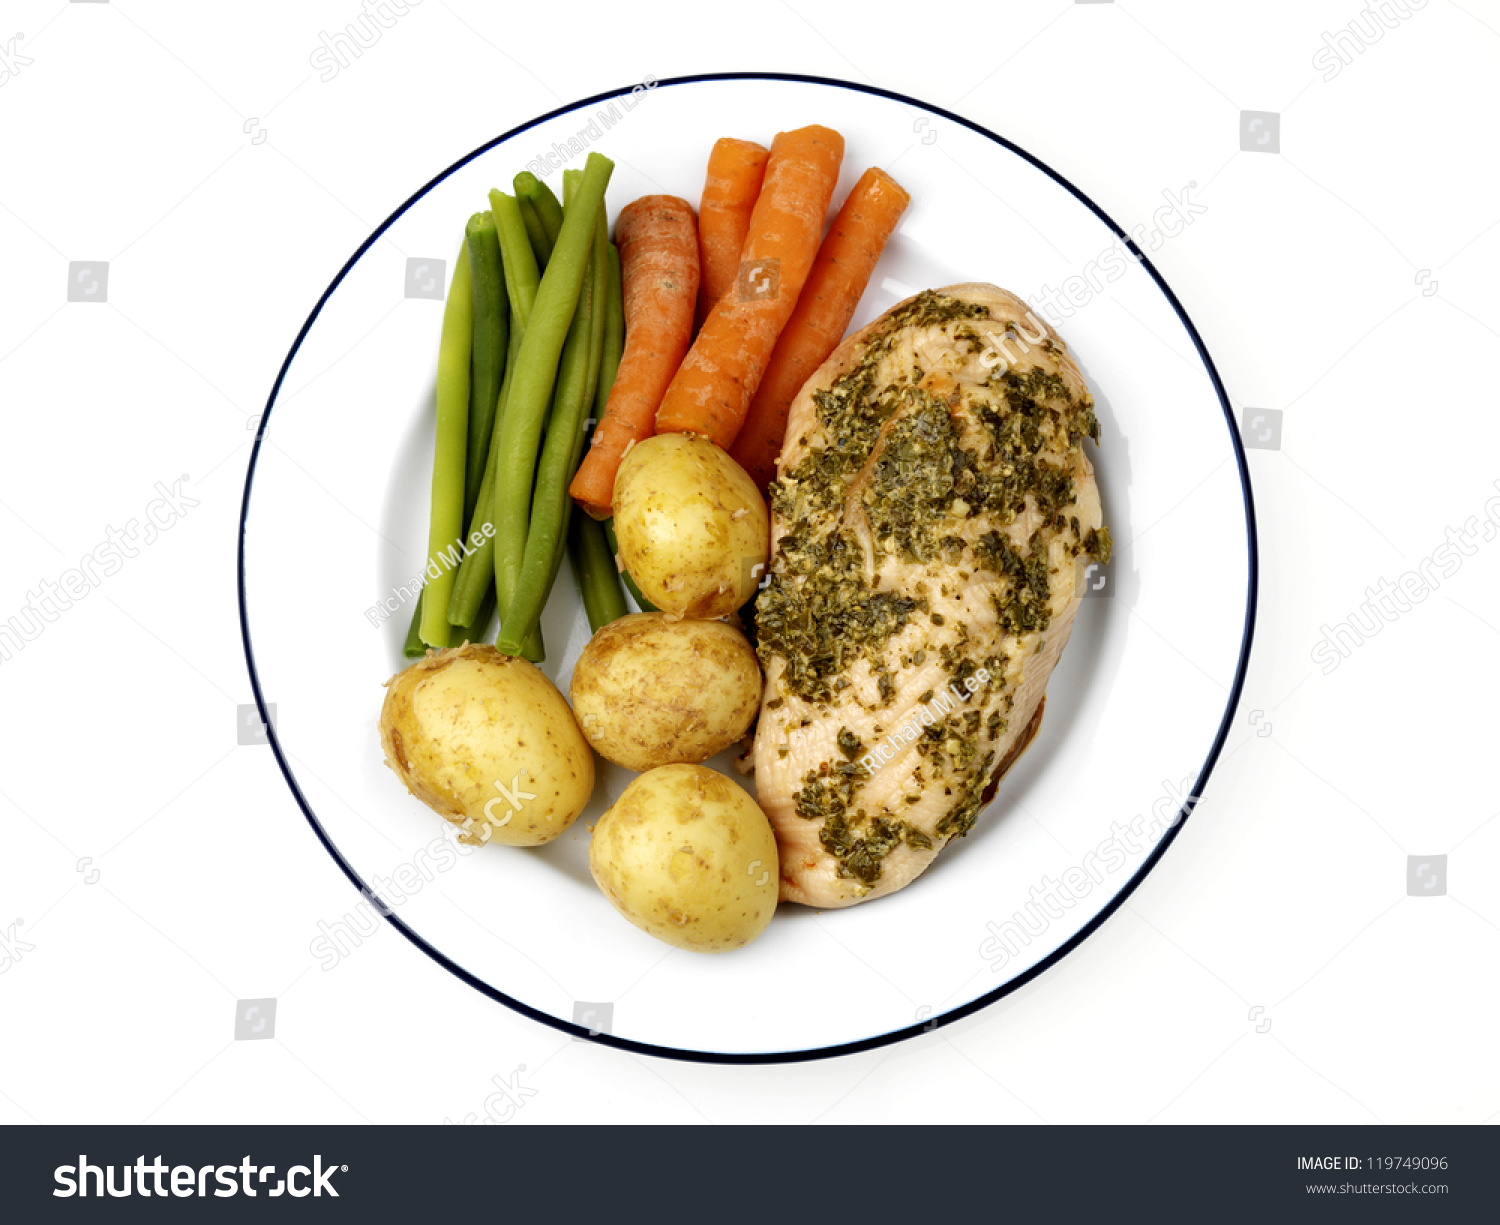 Grilled Chicken Breast With Vegetables Stock Photo 119749096 ...